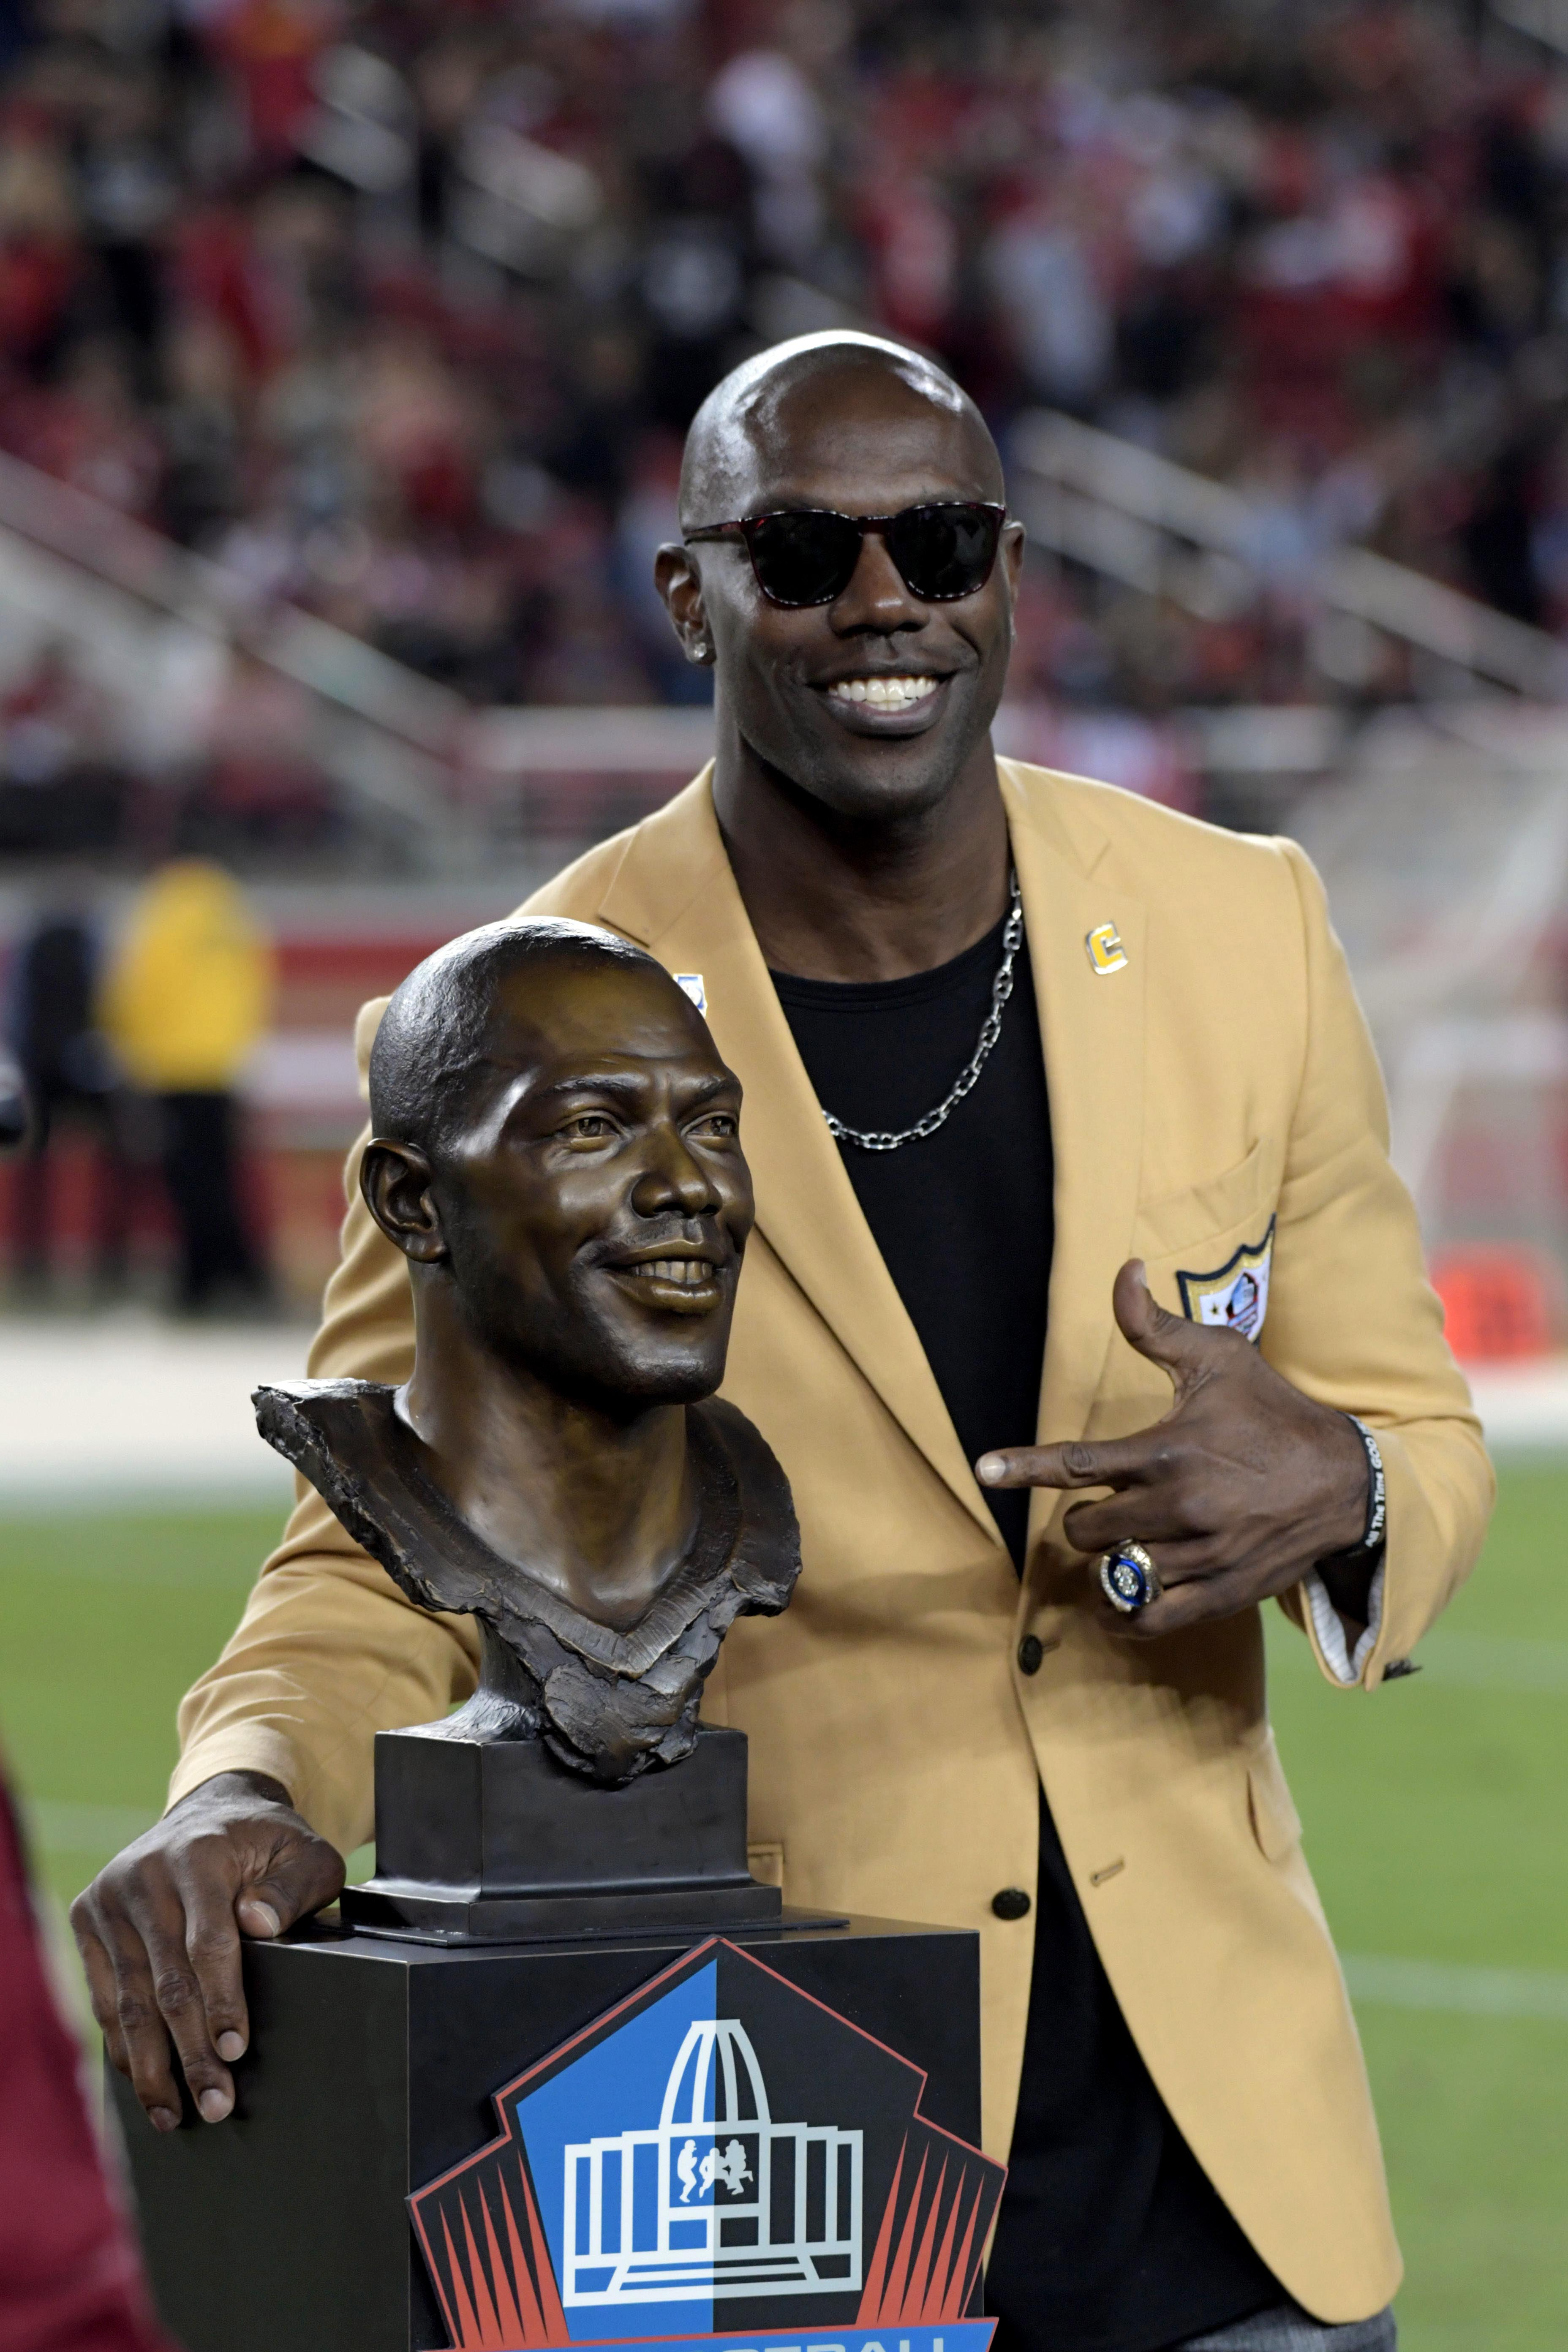 reputable site cfcf9 7d6ce Terrell Owens receives Hall of Fame ring, unveils bust at ...